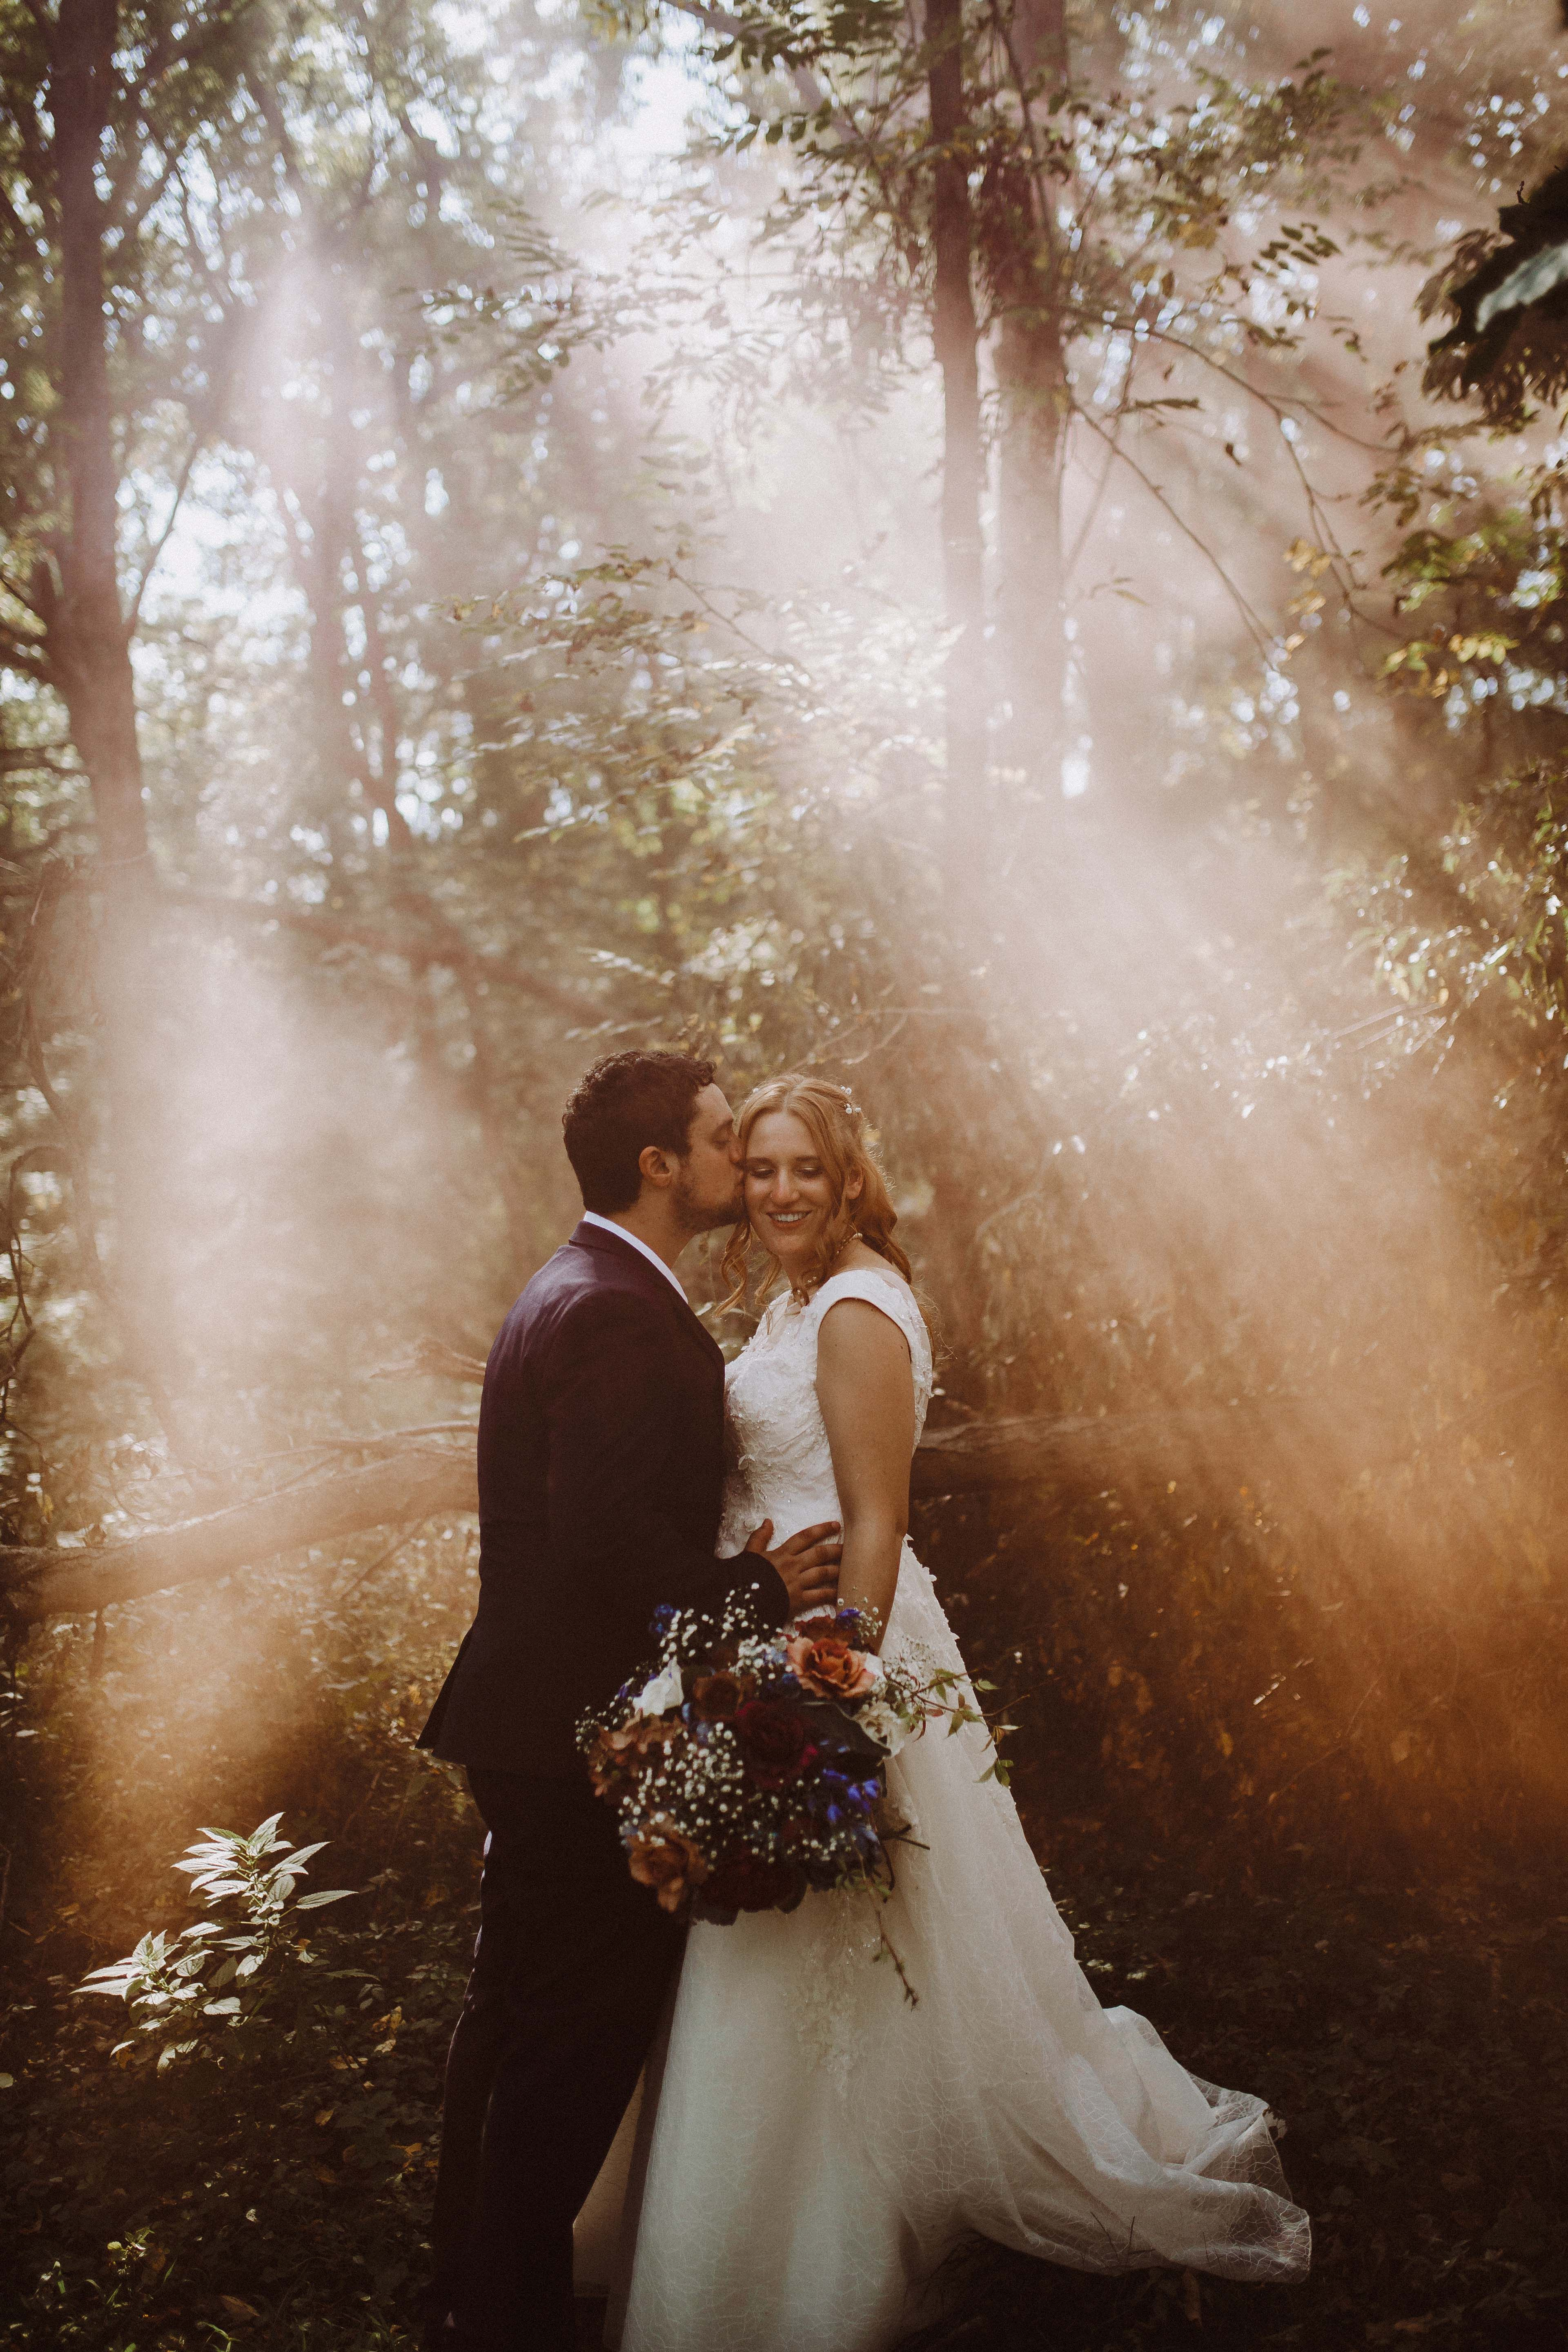 A Whimsical Wedding In The Woods Real Wedding Inspiration Wedding Couple Poses Photography Wedding Photography Poses Wedding Photography Bride